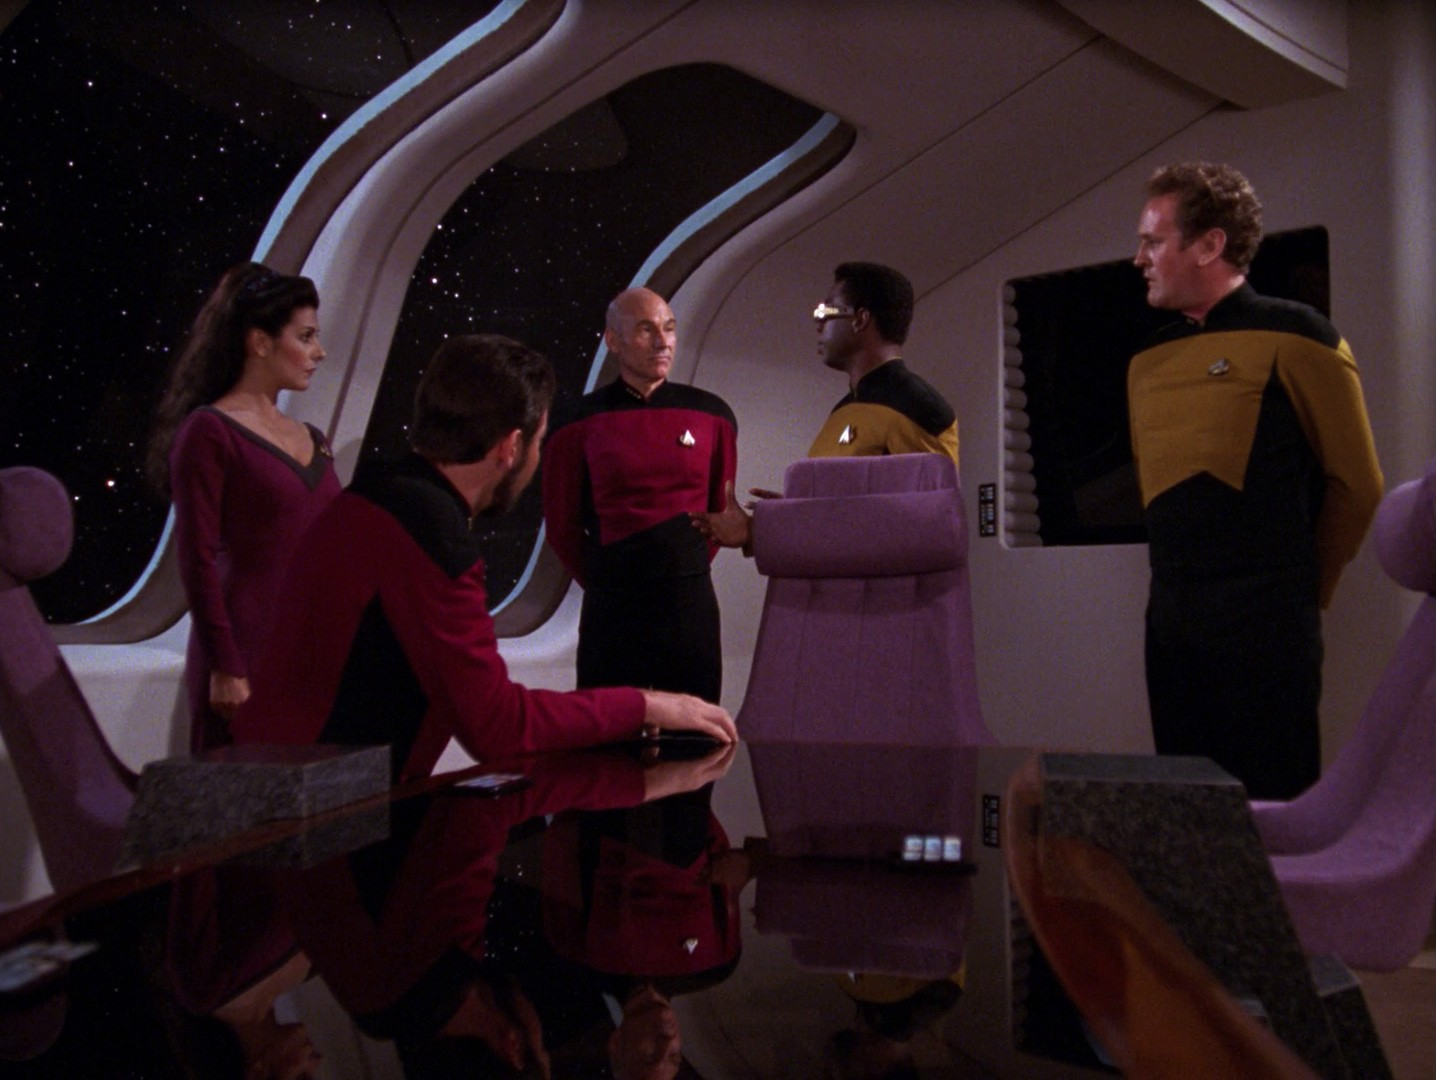 Riker_tells_OBrien_and_La_Forge_to_get_transporters_working.jpg